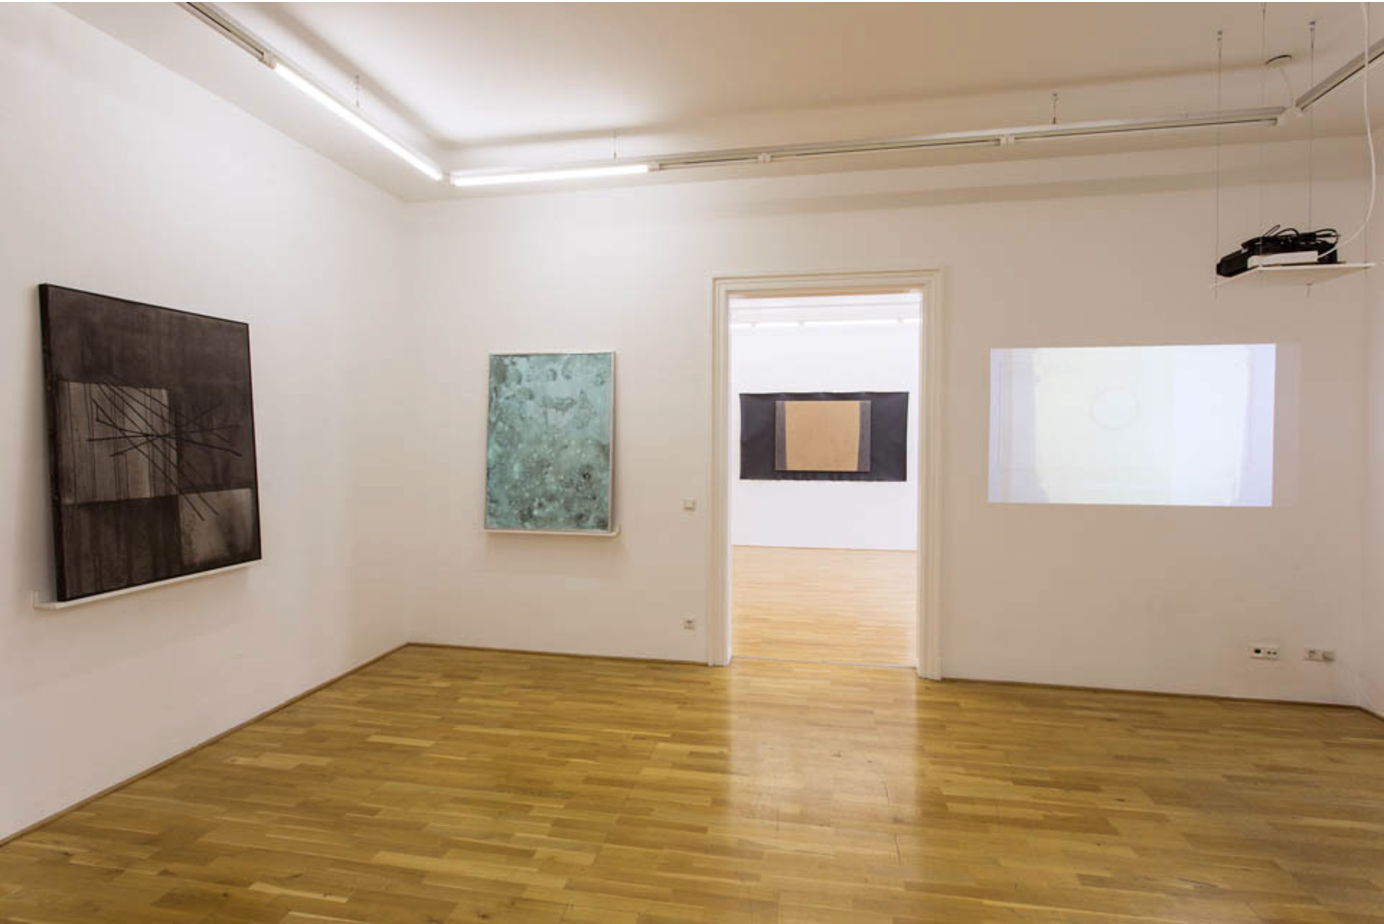 Exhibition View, Galerie Andreas Huber, Dress rehearsal, curated by_Franklin Melendez, 2013, Photo: Klaus Vyhnalek